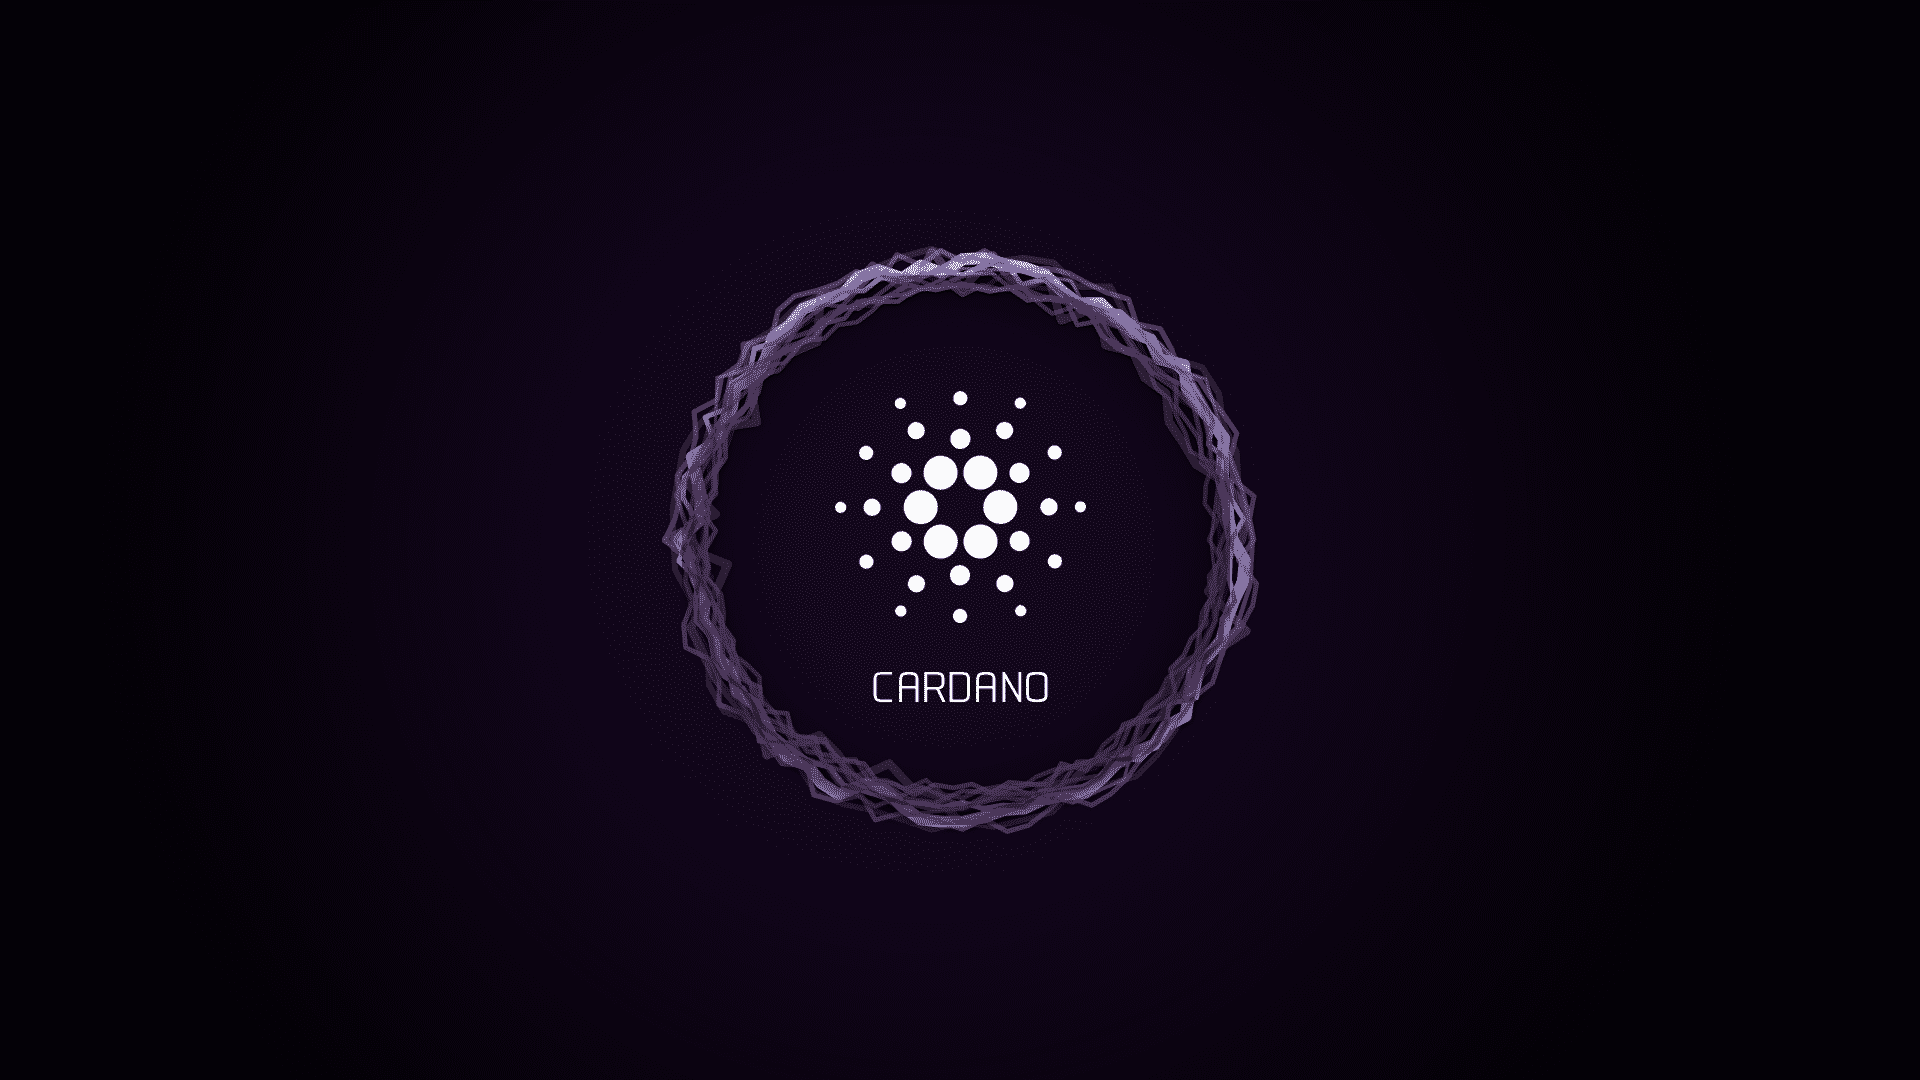 Cardano (ADA) Registers New ATH as the Institutional Interest is Increasing